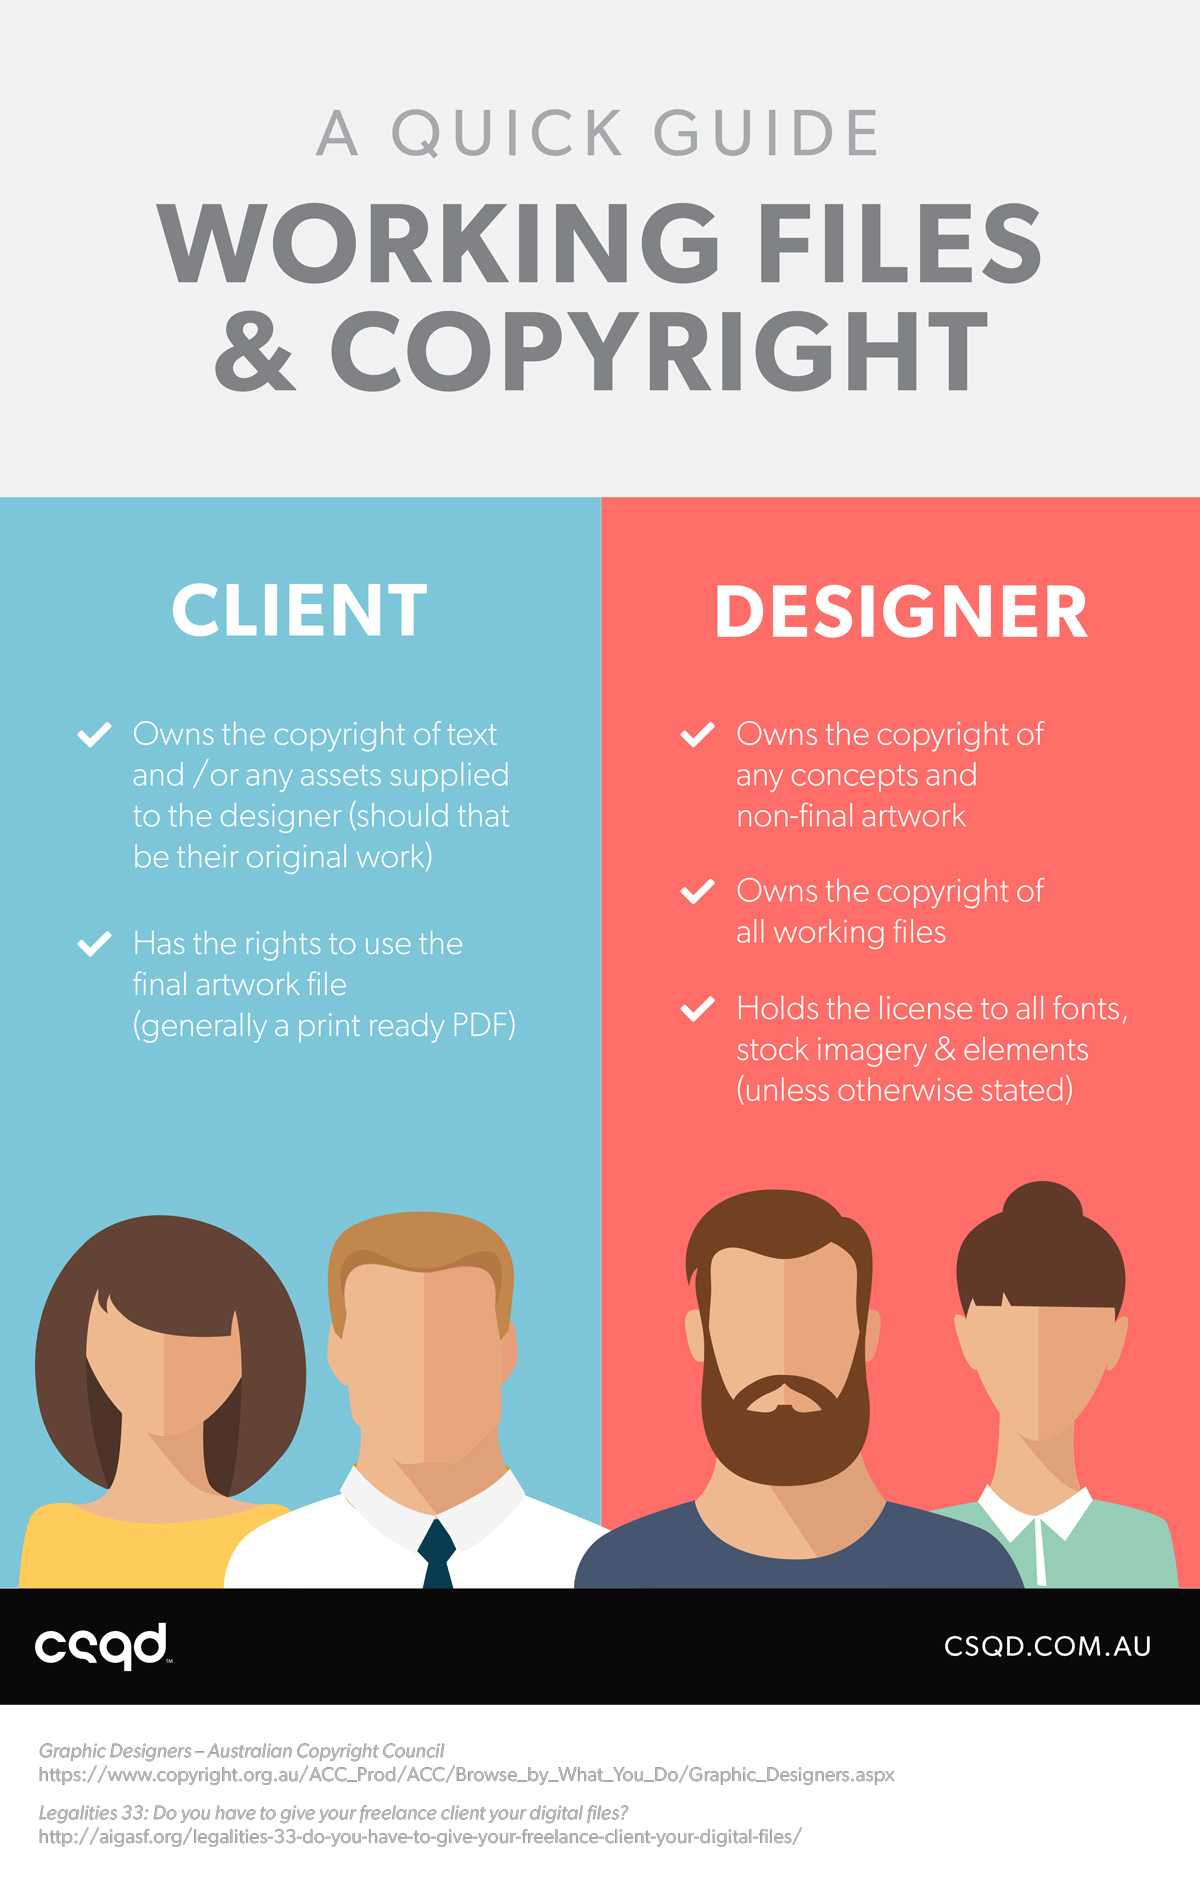 Copyright ownership of working design files